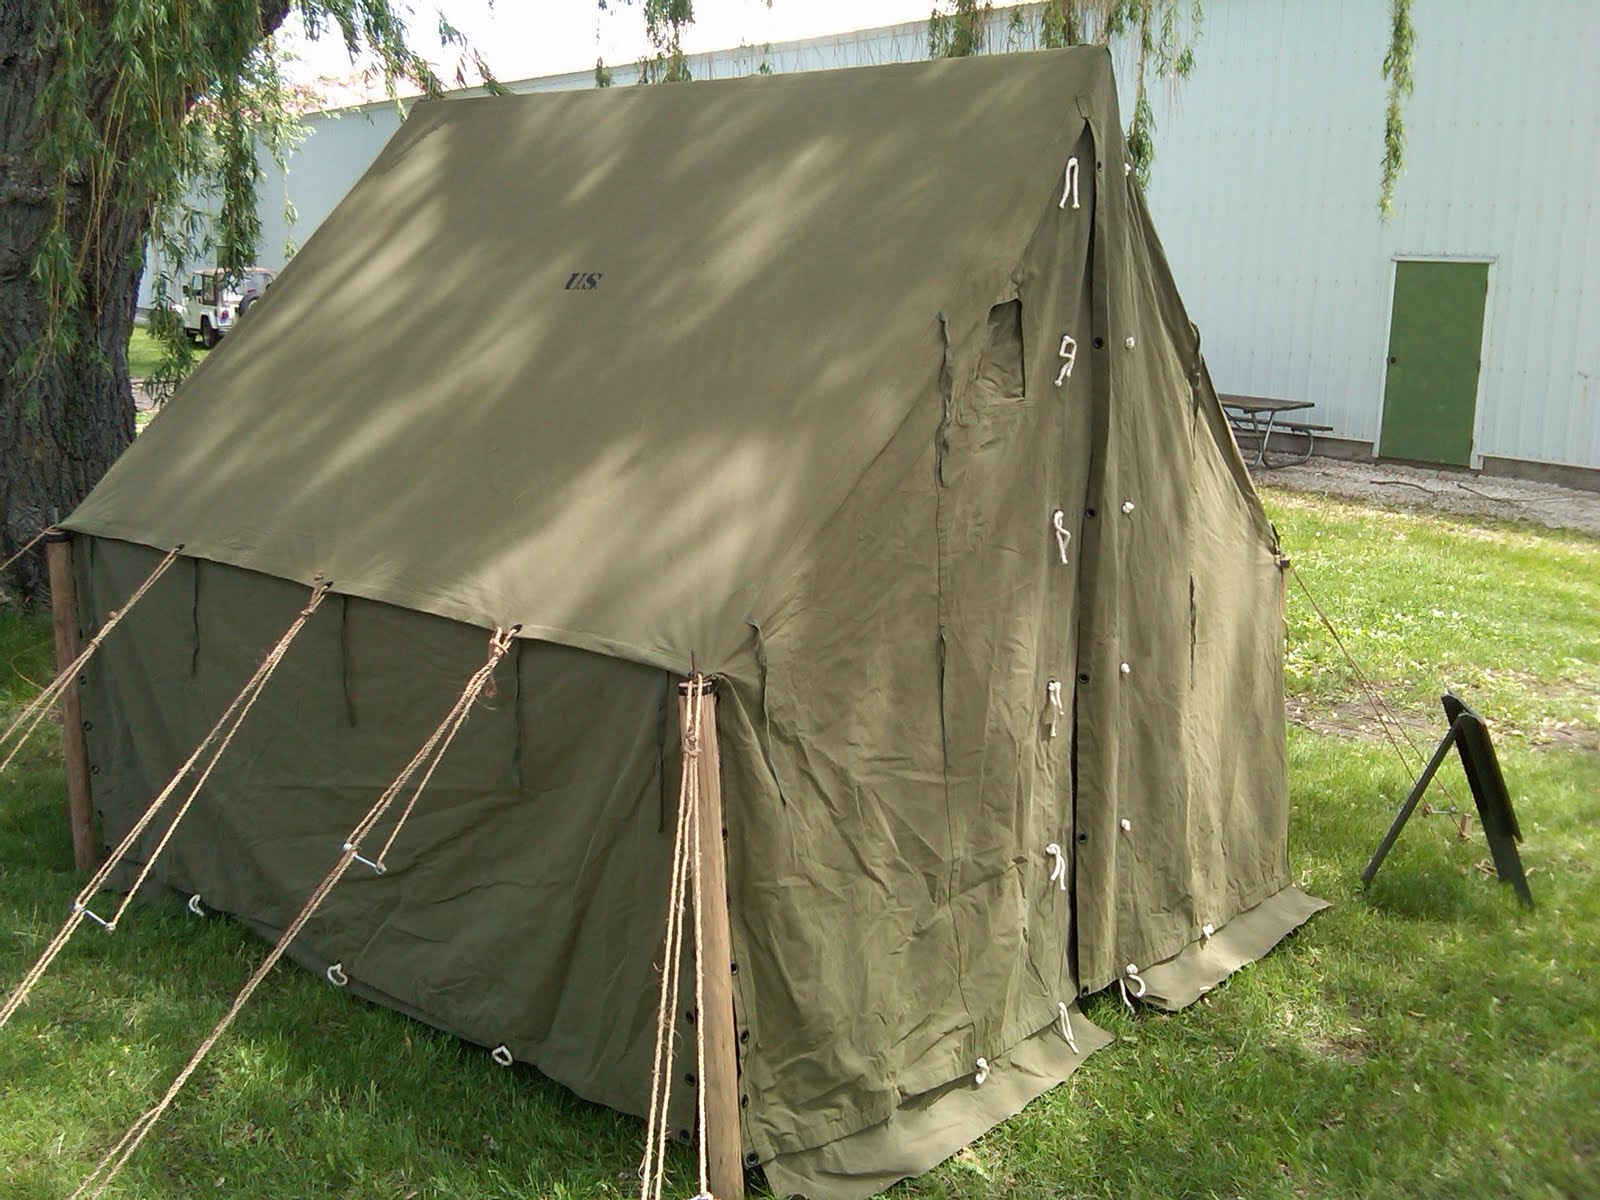 World War II (WWII) Tent at Anzio Express Event